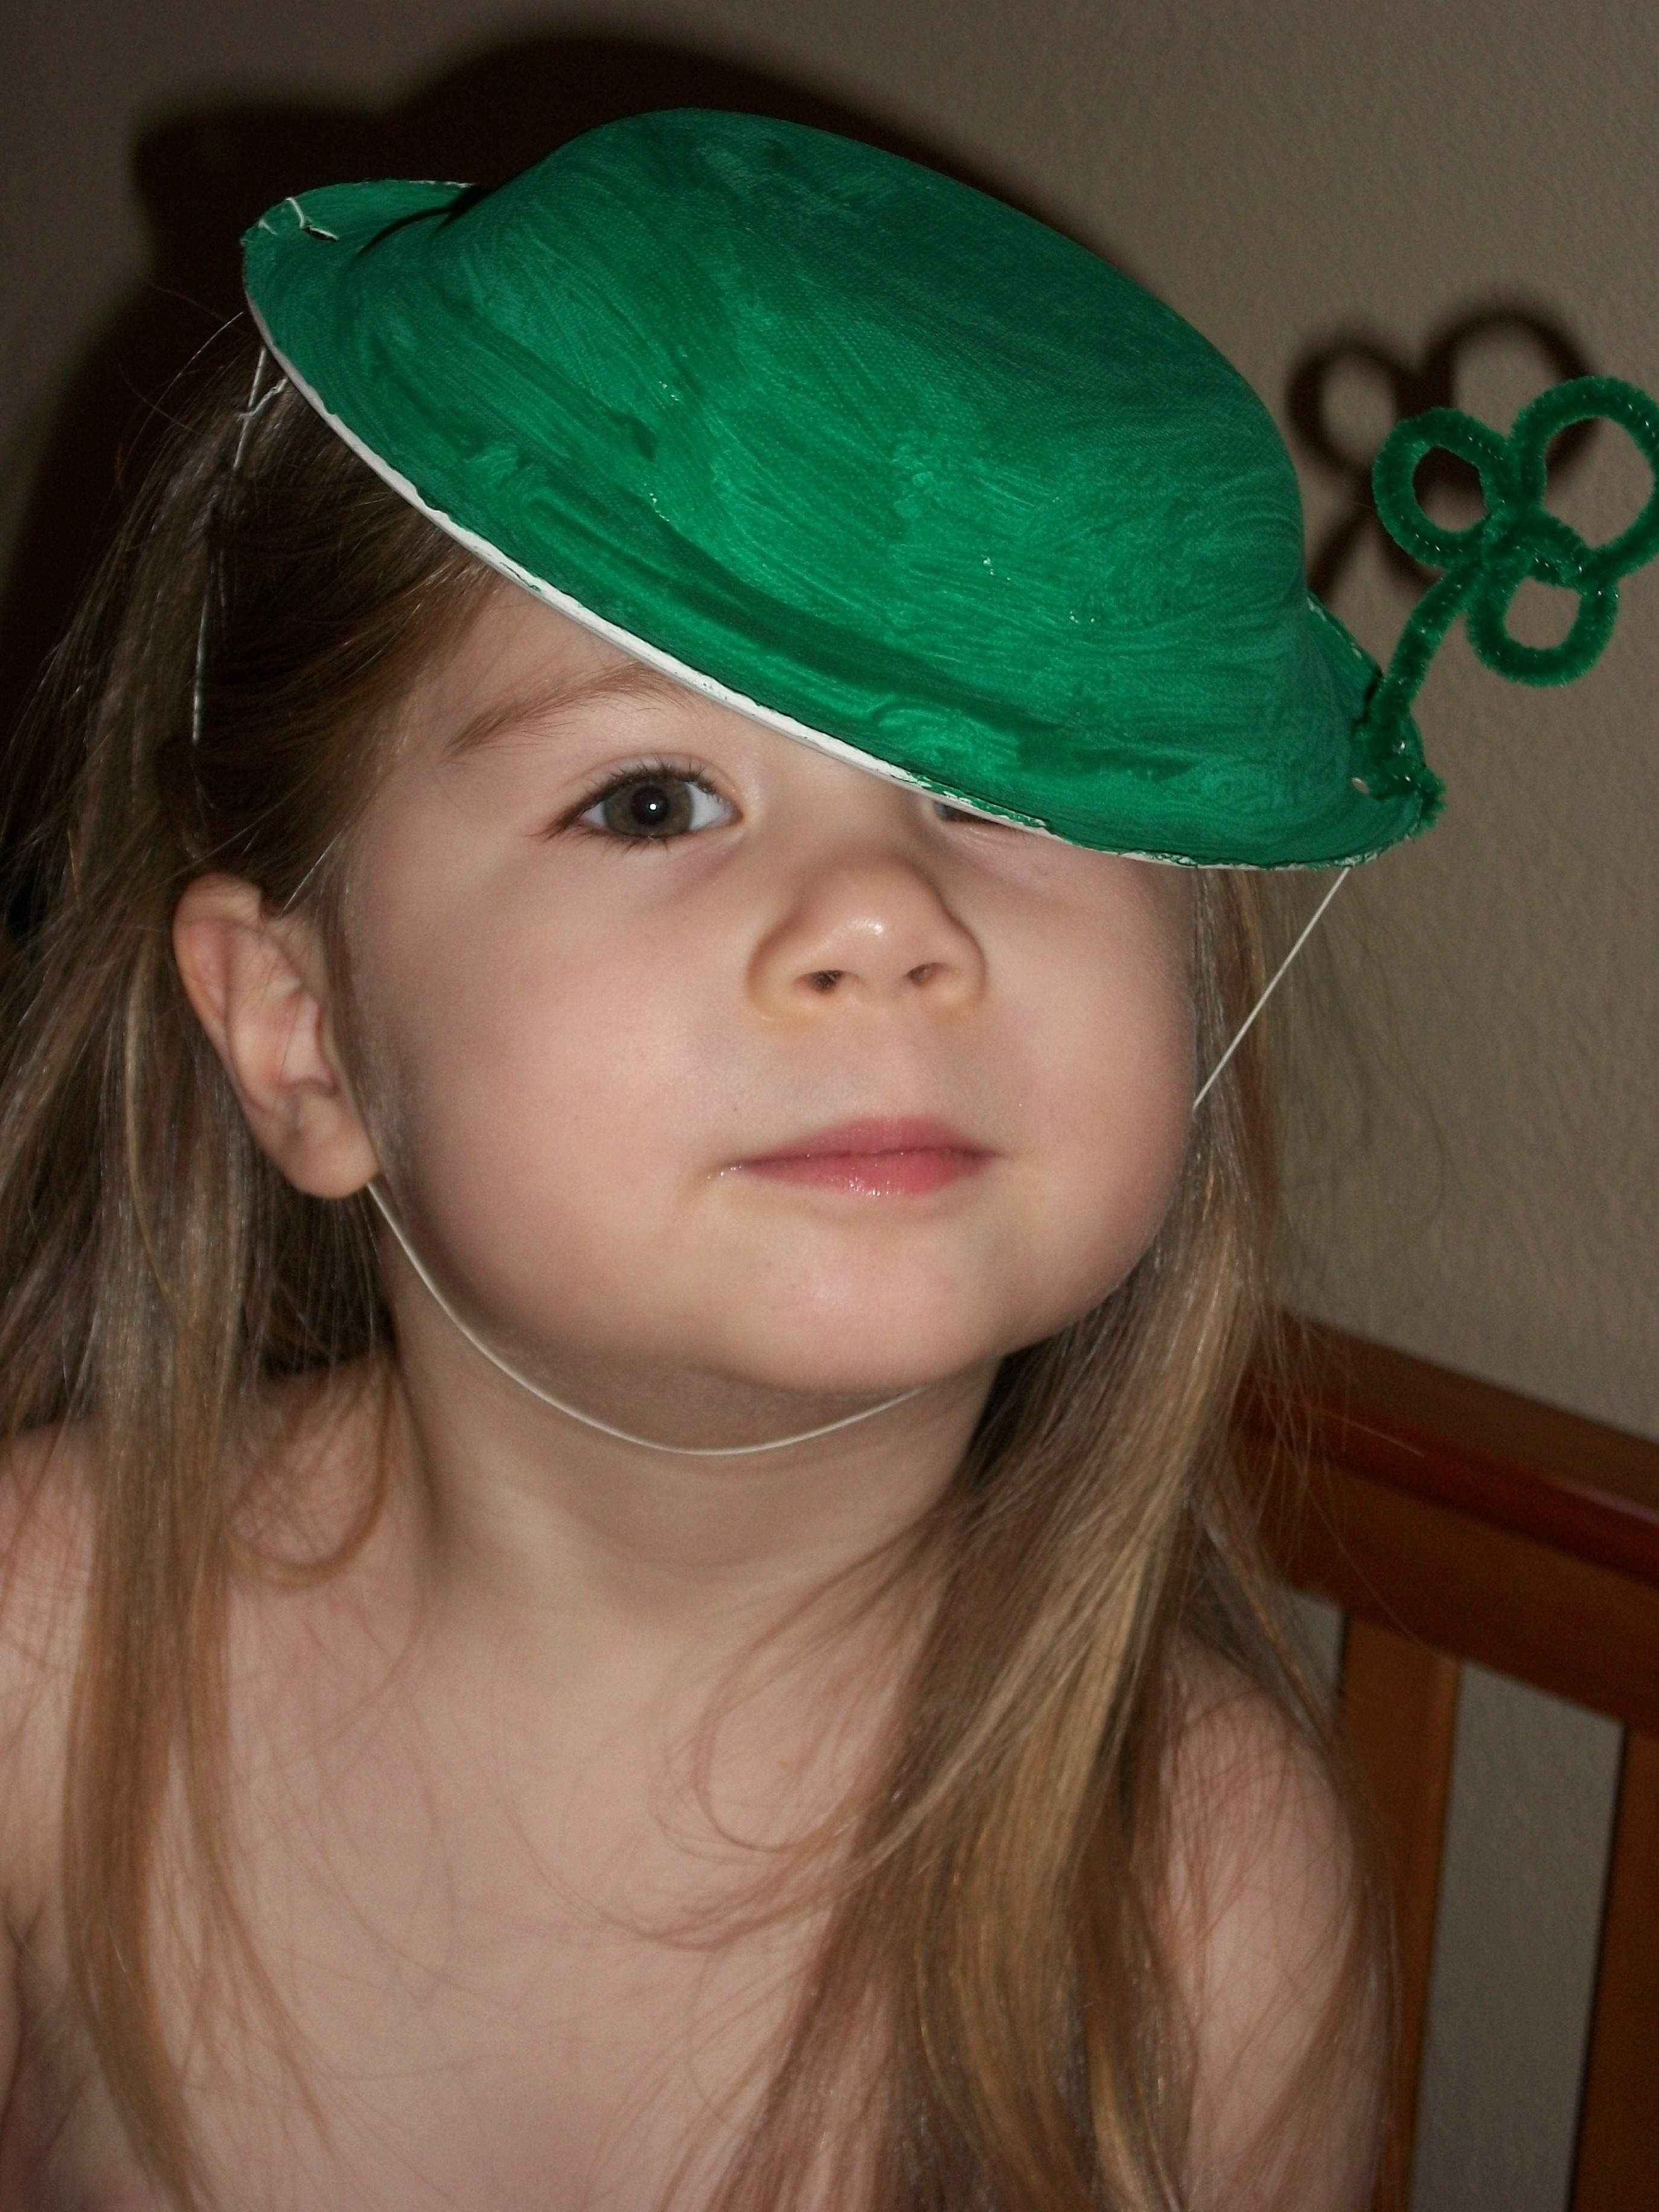 She S All Ready For The St Patrick S Day Parade